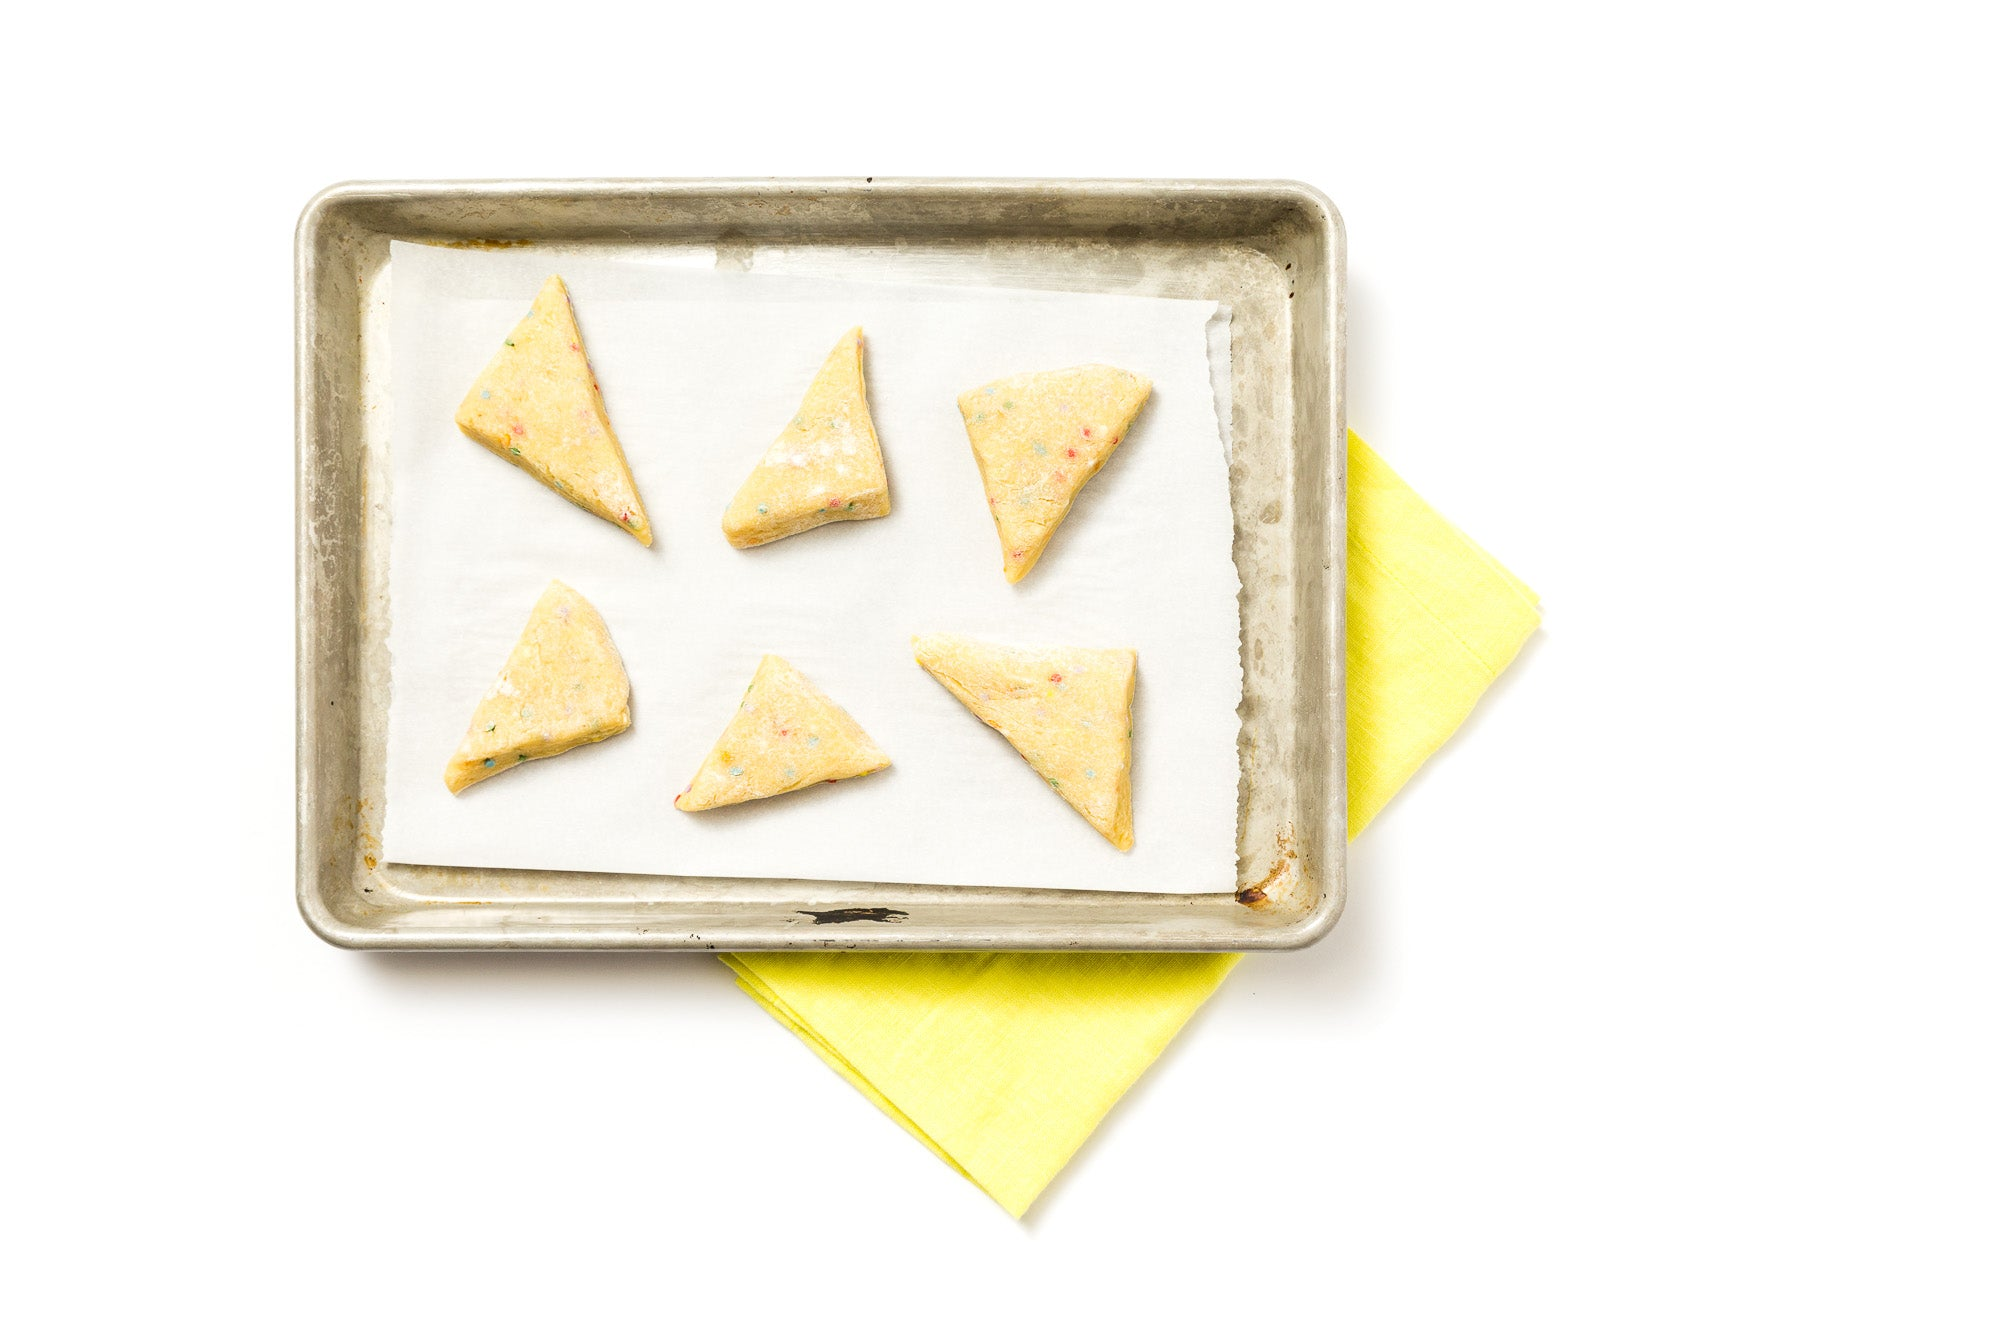 Image from above of a baking sheet with six Miss Jones Baking Co Confetti Pop Cookie Mix Sprinkle Scones dough pieces